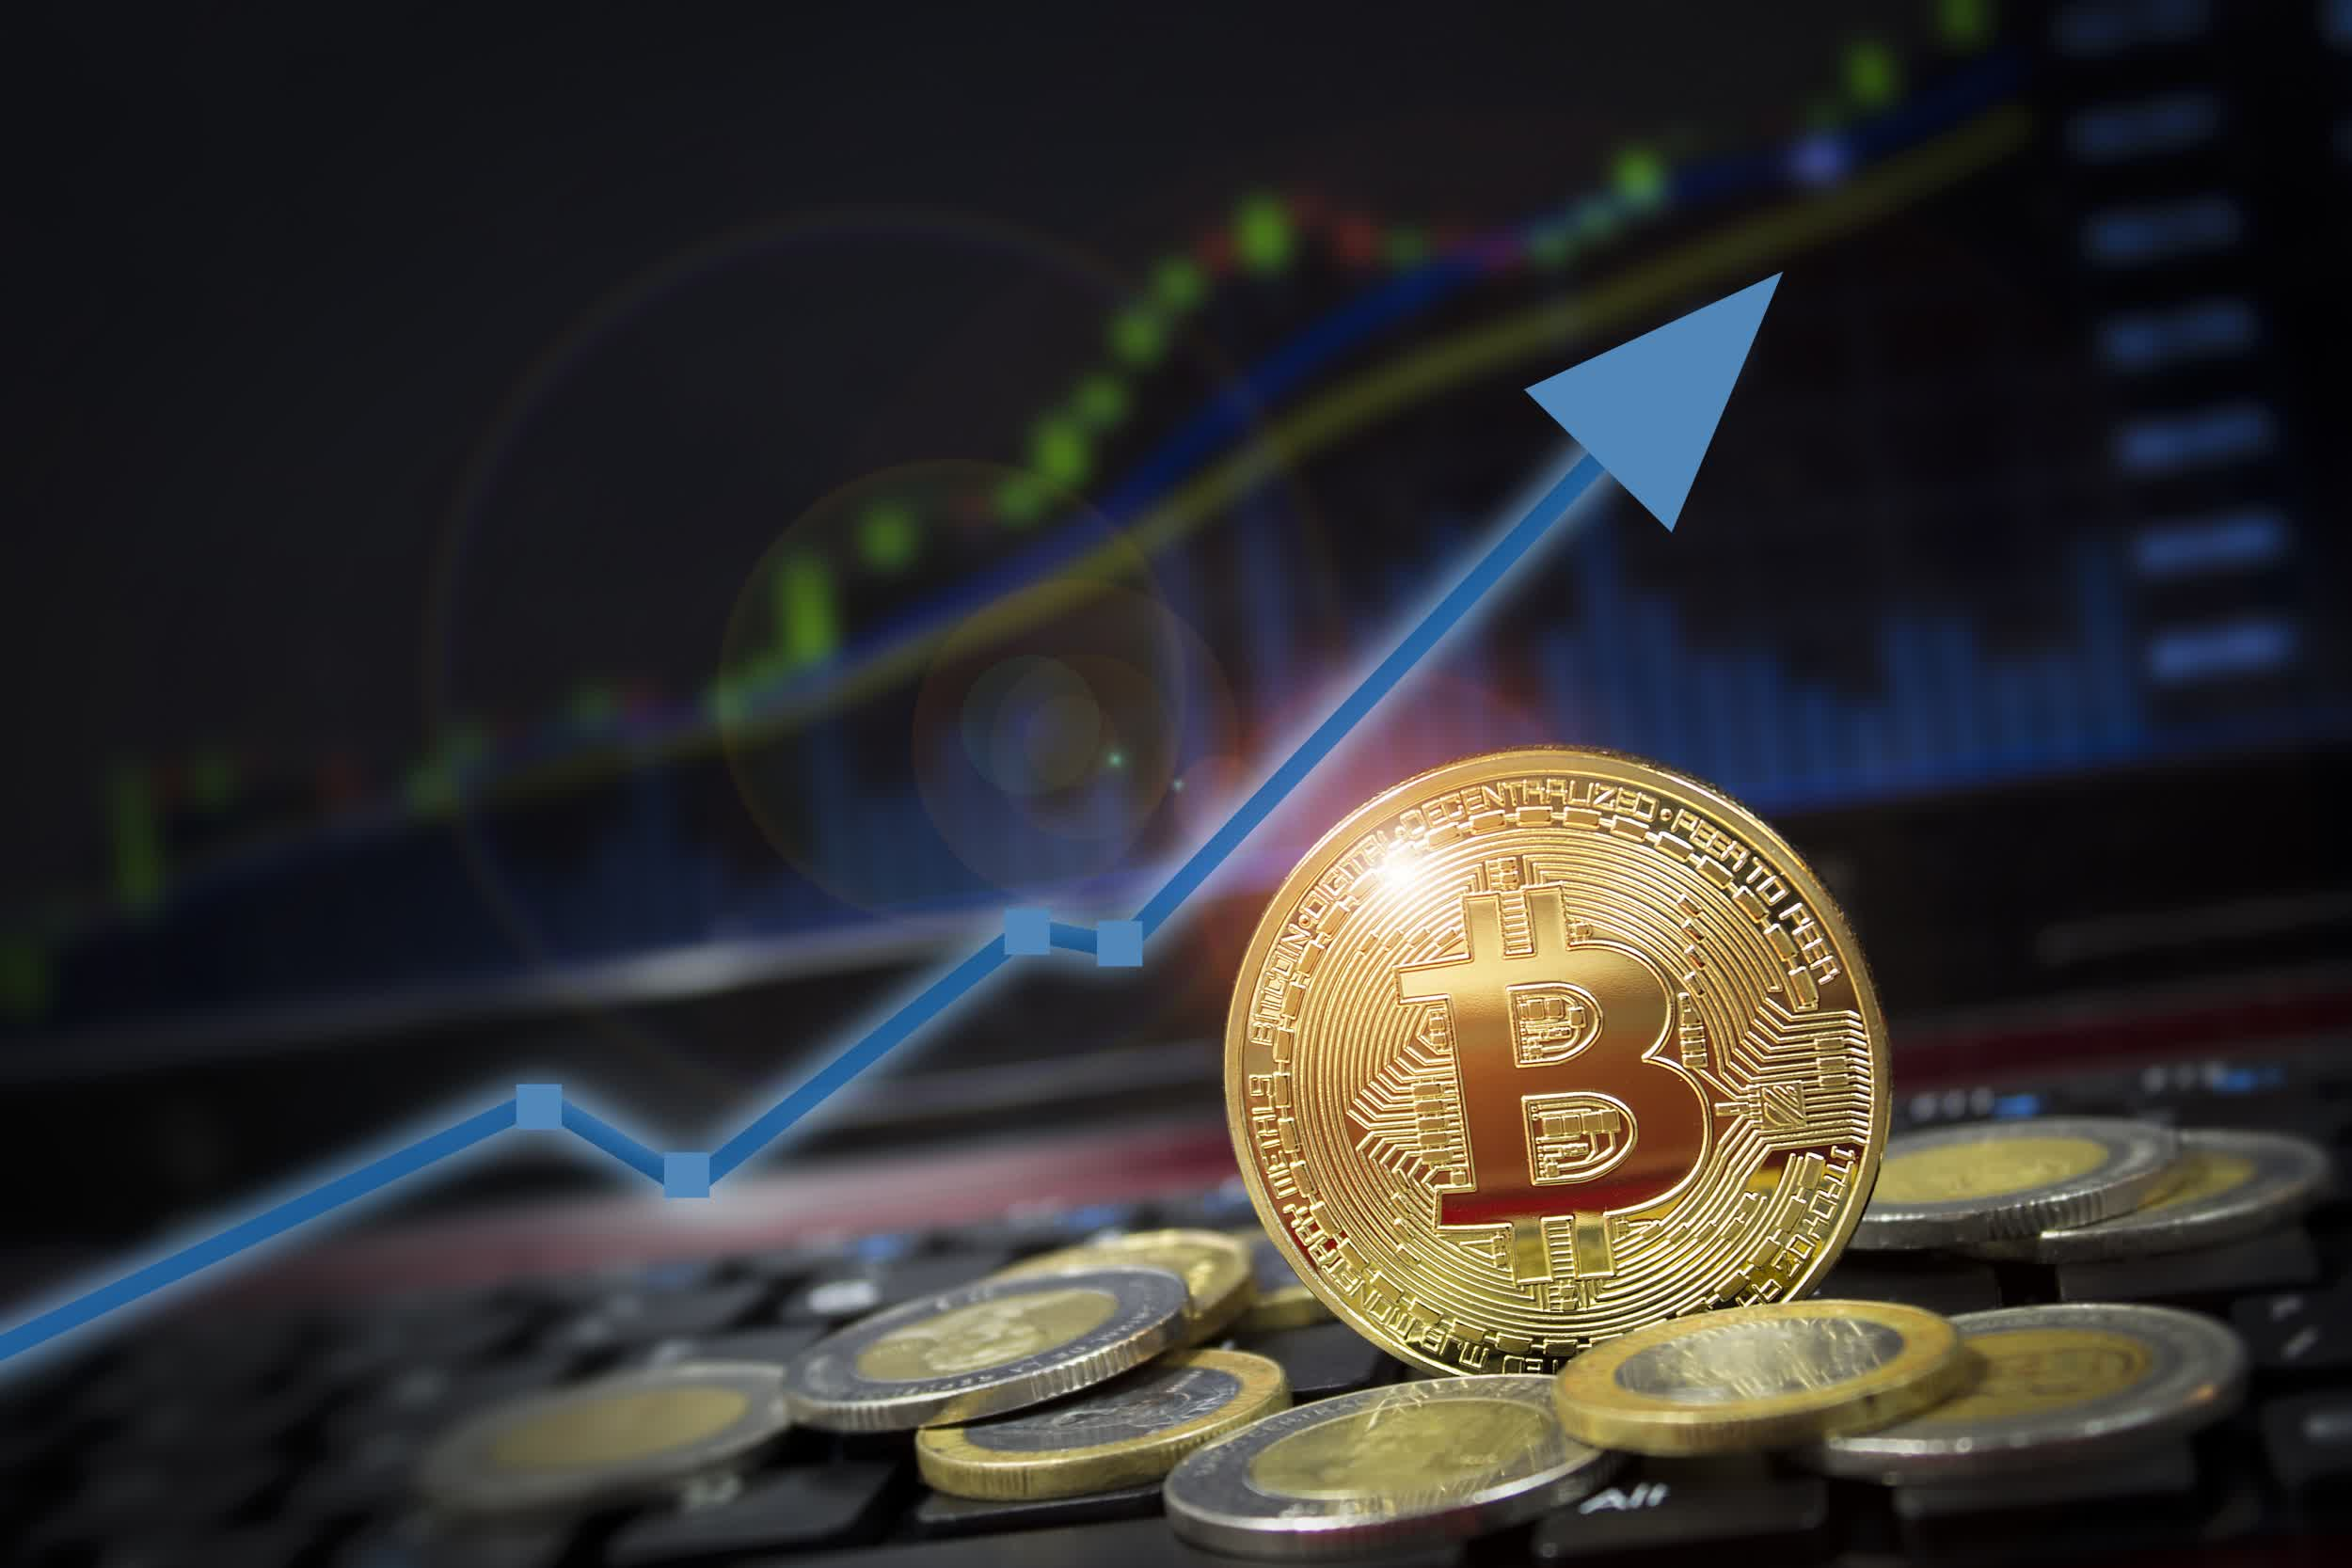 A single Bitcoin is now worth more than... $23,000